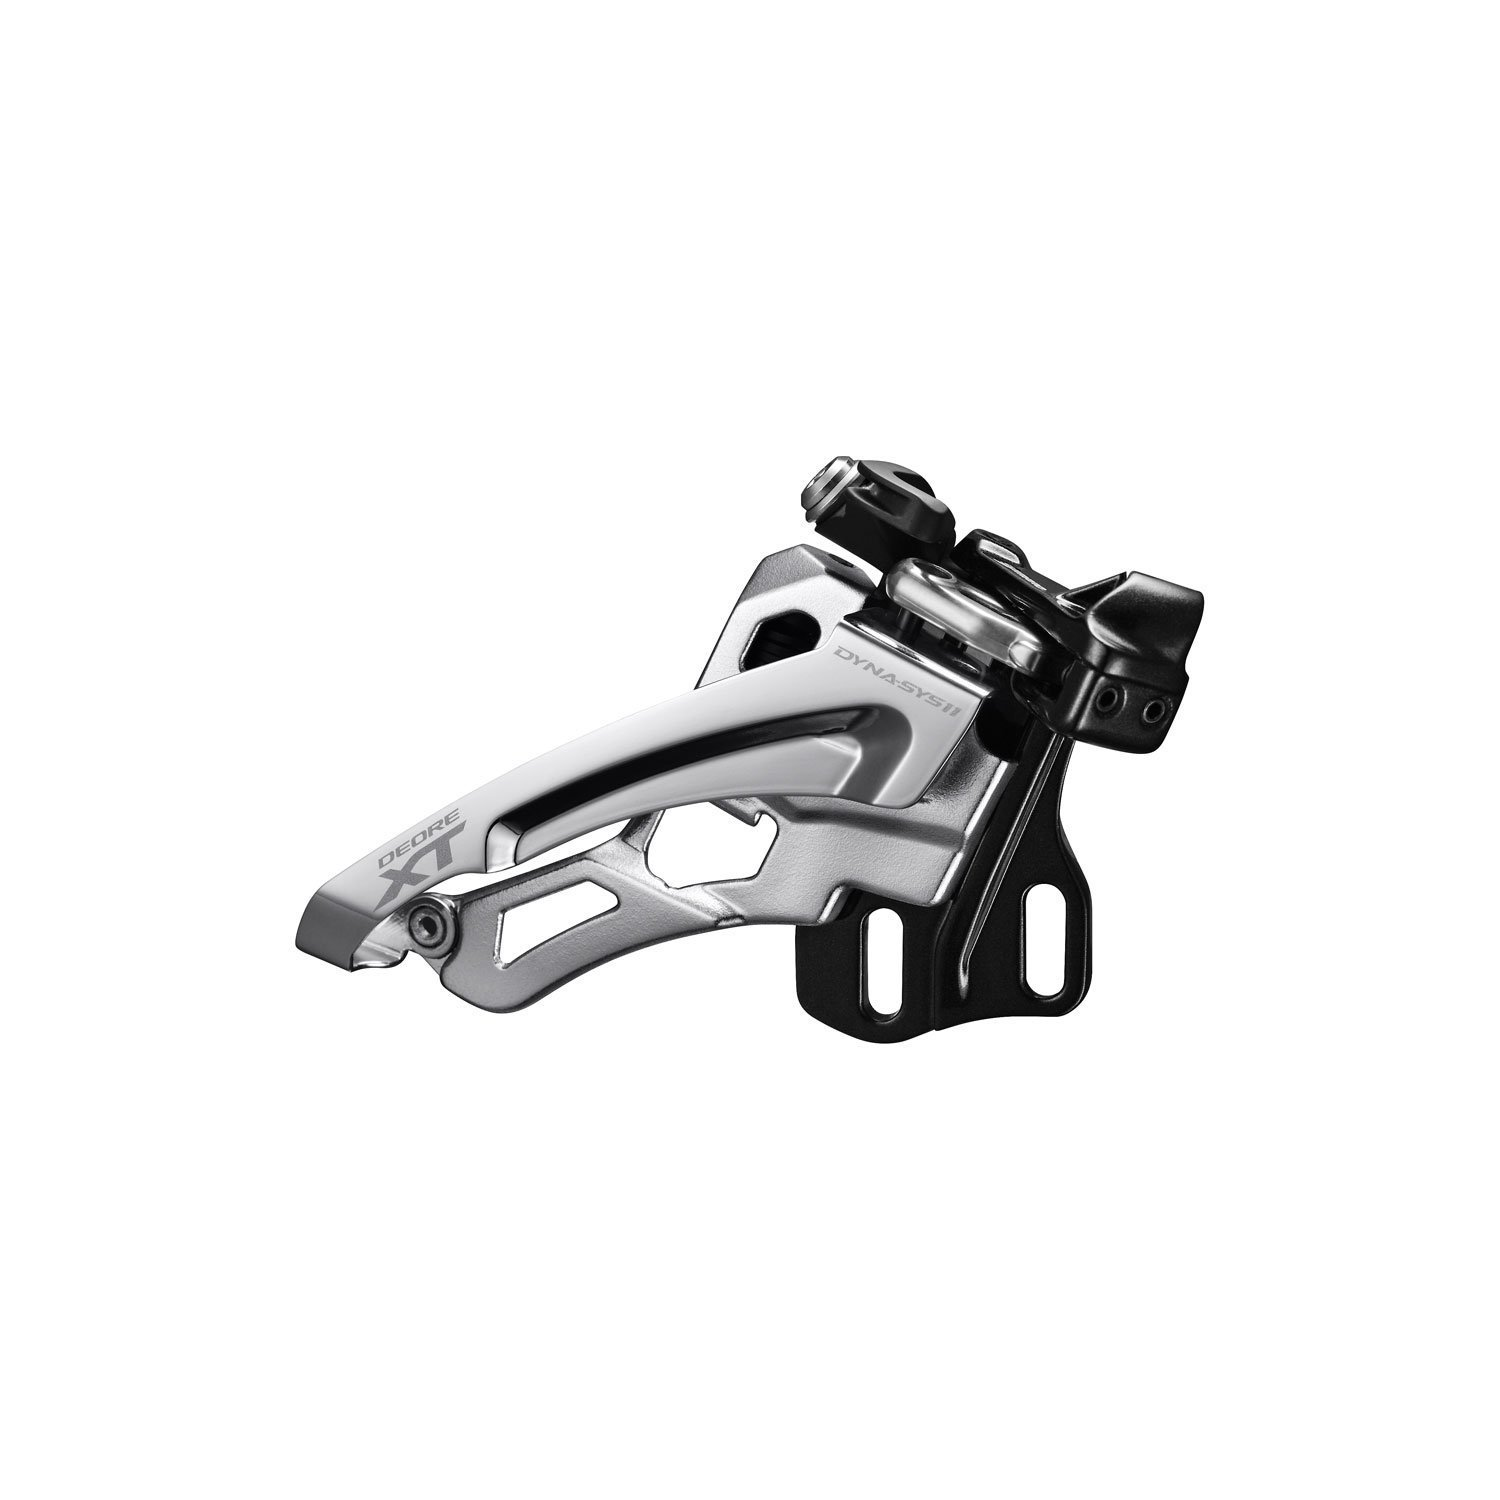 SHIMANO 2013 Deore Front Triple Derailleur Silver Conventional Swing Top Pull PK